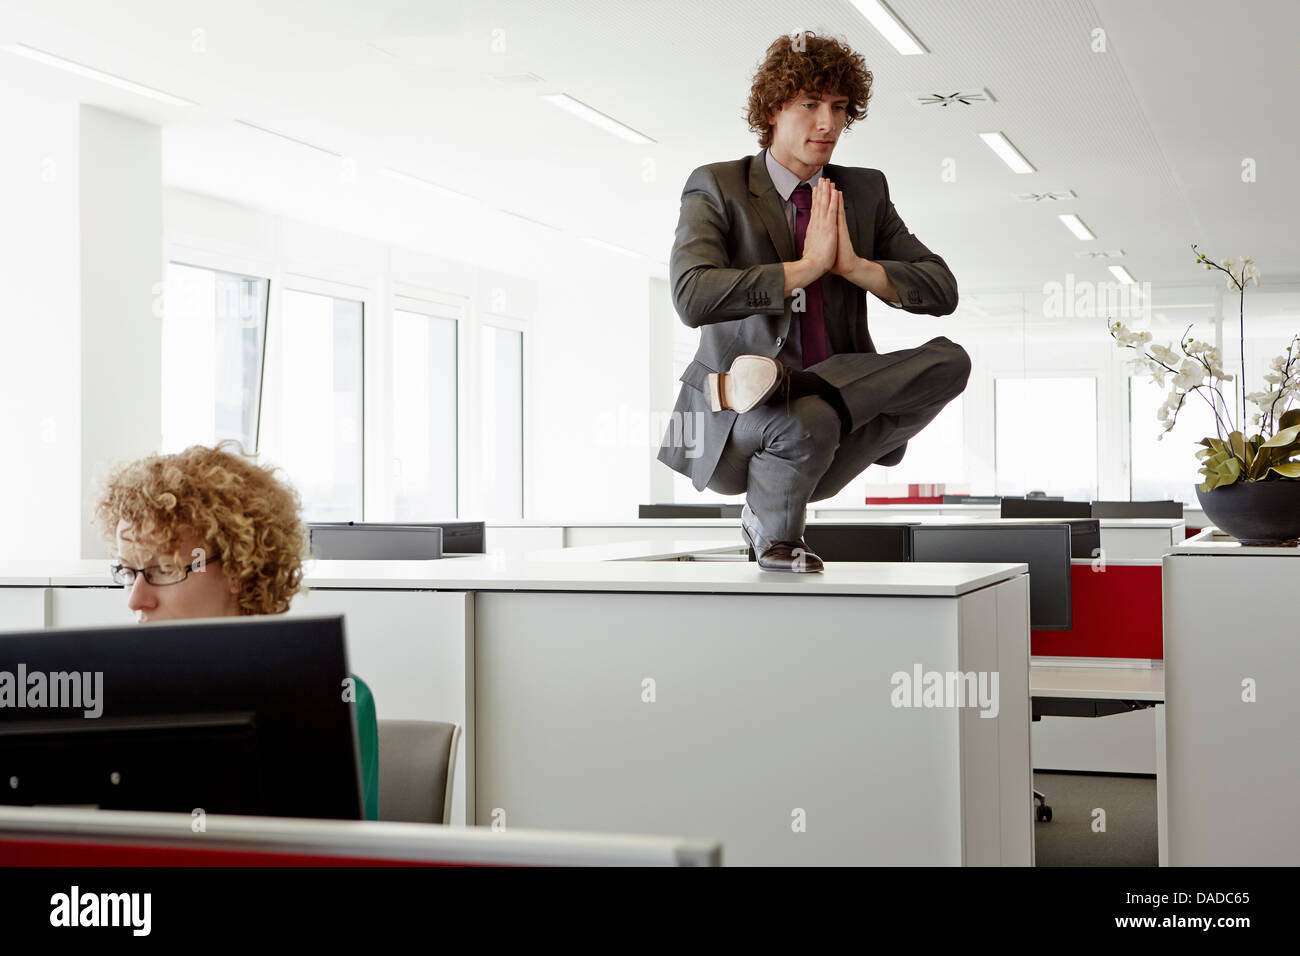 Businessman doing yoga pose on top of filing cabinet, behind woman working at desk - Stock Image